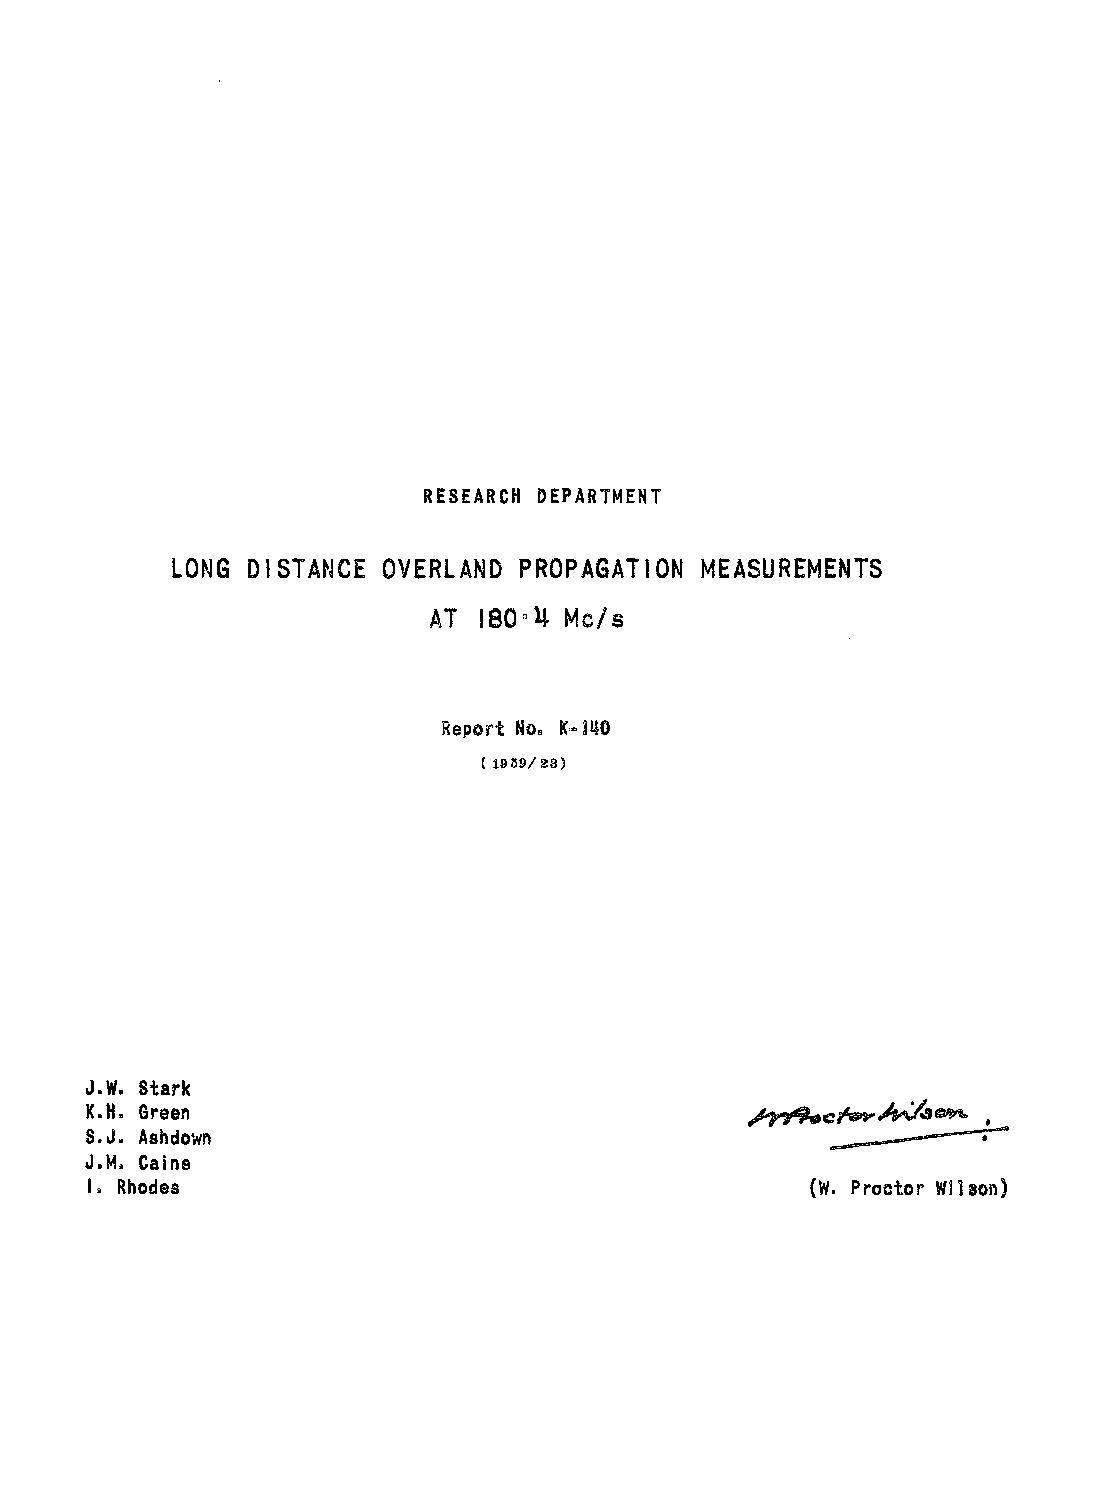 K.H. Green, S.J. Ashdown, J.M. Caine, I. Rhodes J.W. Stark - BBC Research and Development Report 1959-23 : Long distance overland propagation measurements at 180.4 Mc/s.